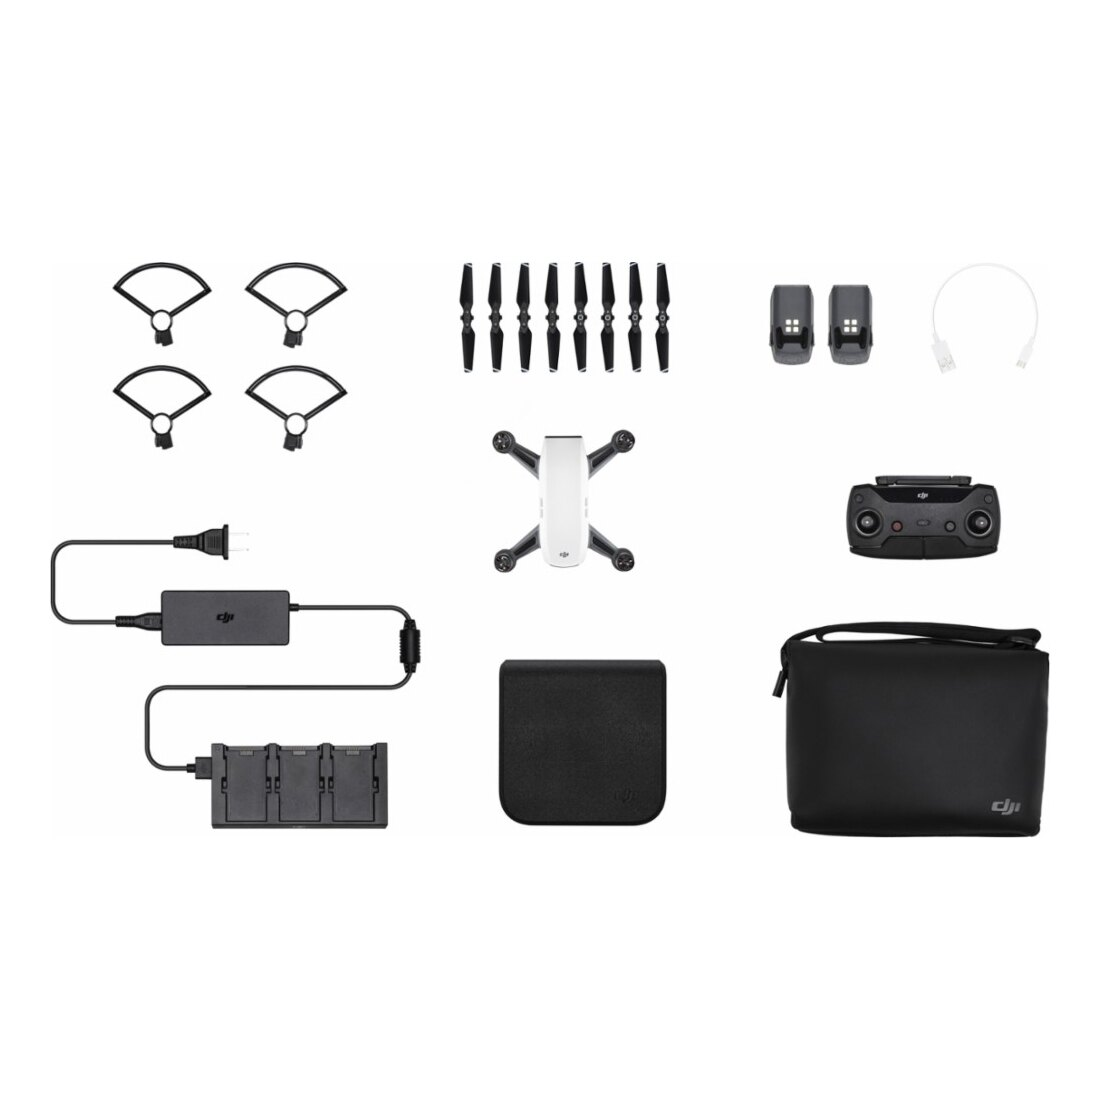 DJI Spark Mini Quadcopter Fly More Combo RC Drone with HD Camera - Alpine White 6